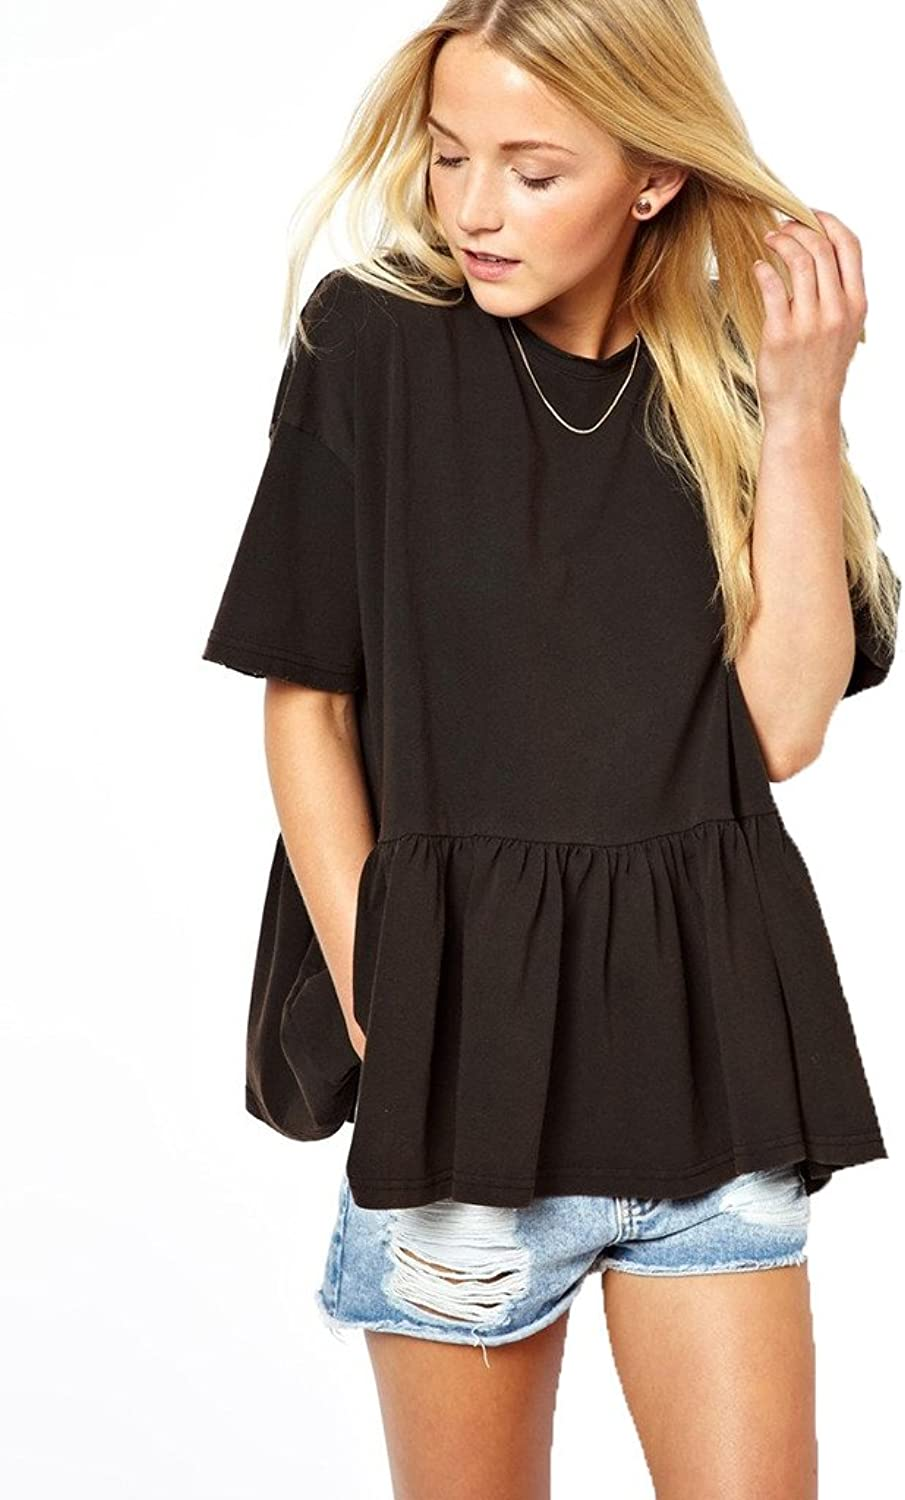 Angel&Lily Oversized Ruffled Loose Comfort Casual Shrit YW84 plus 1x10x (SZ 1652)